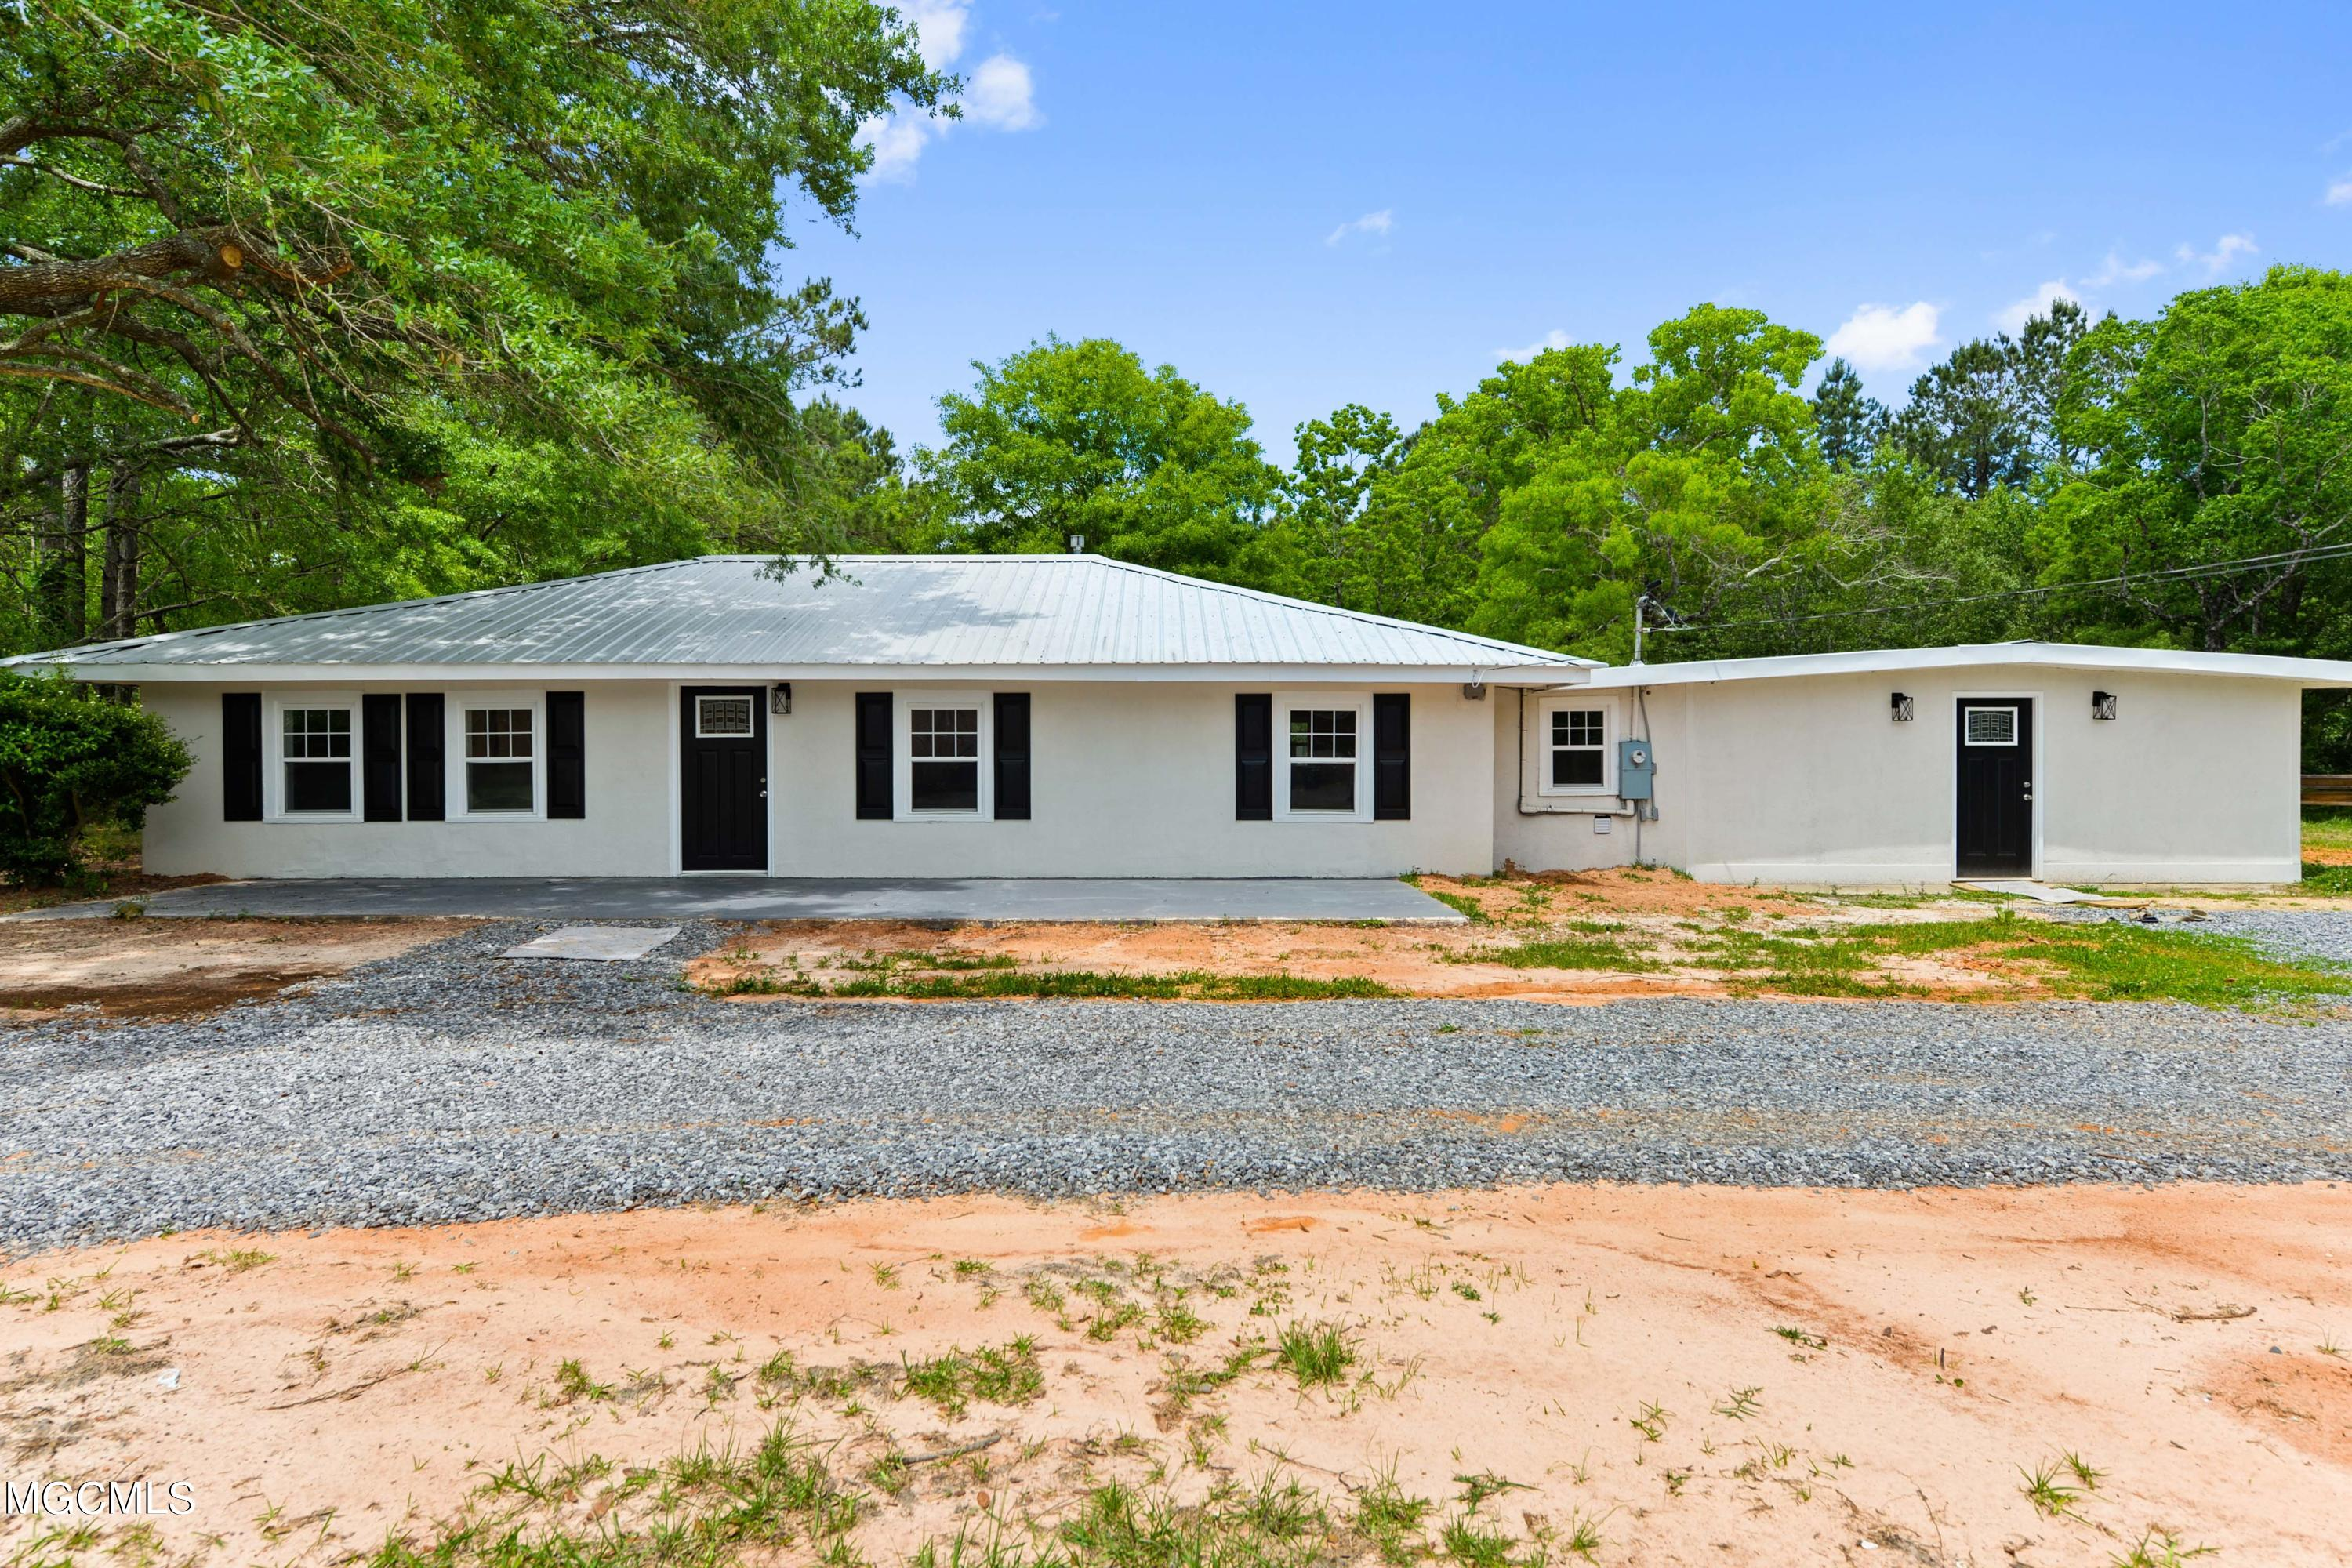 4 bedroom 2 bath on 4 acres in East Central School District. Home has been completely updated. All new electrical and plumbing.